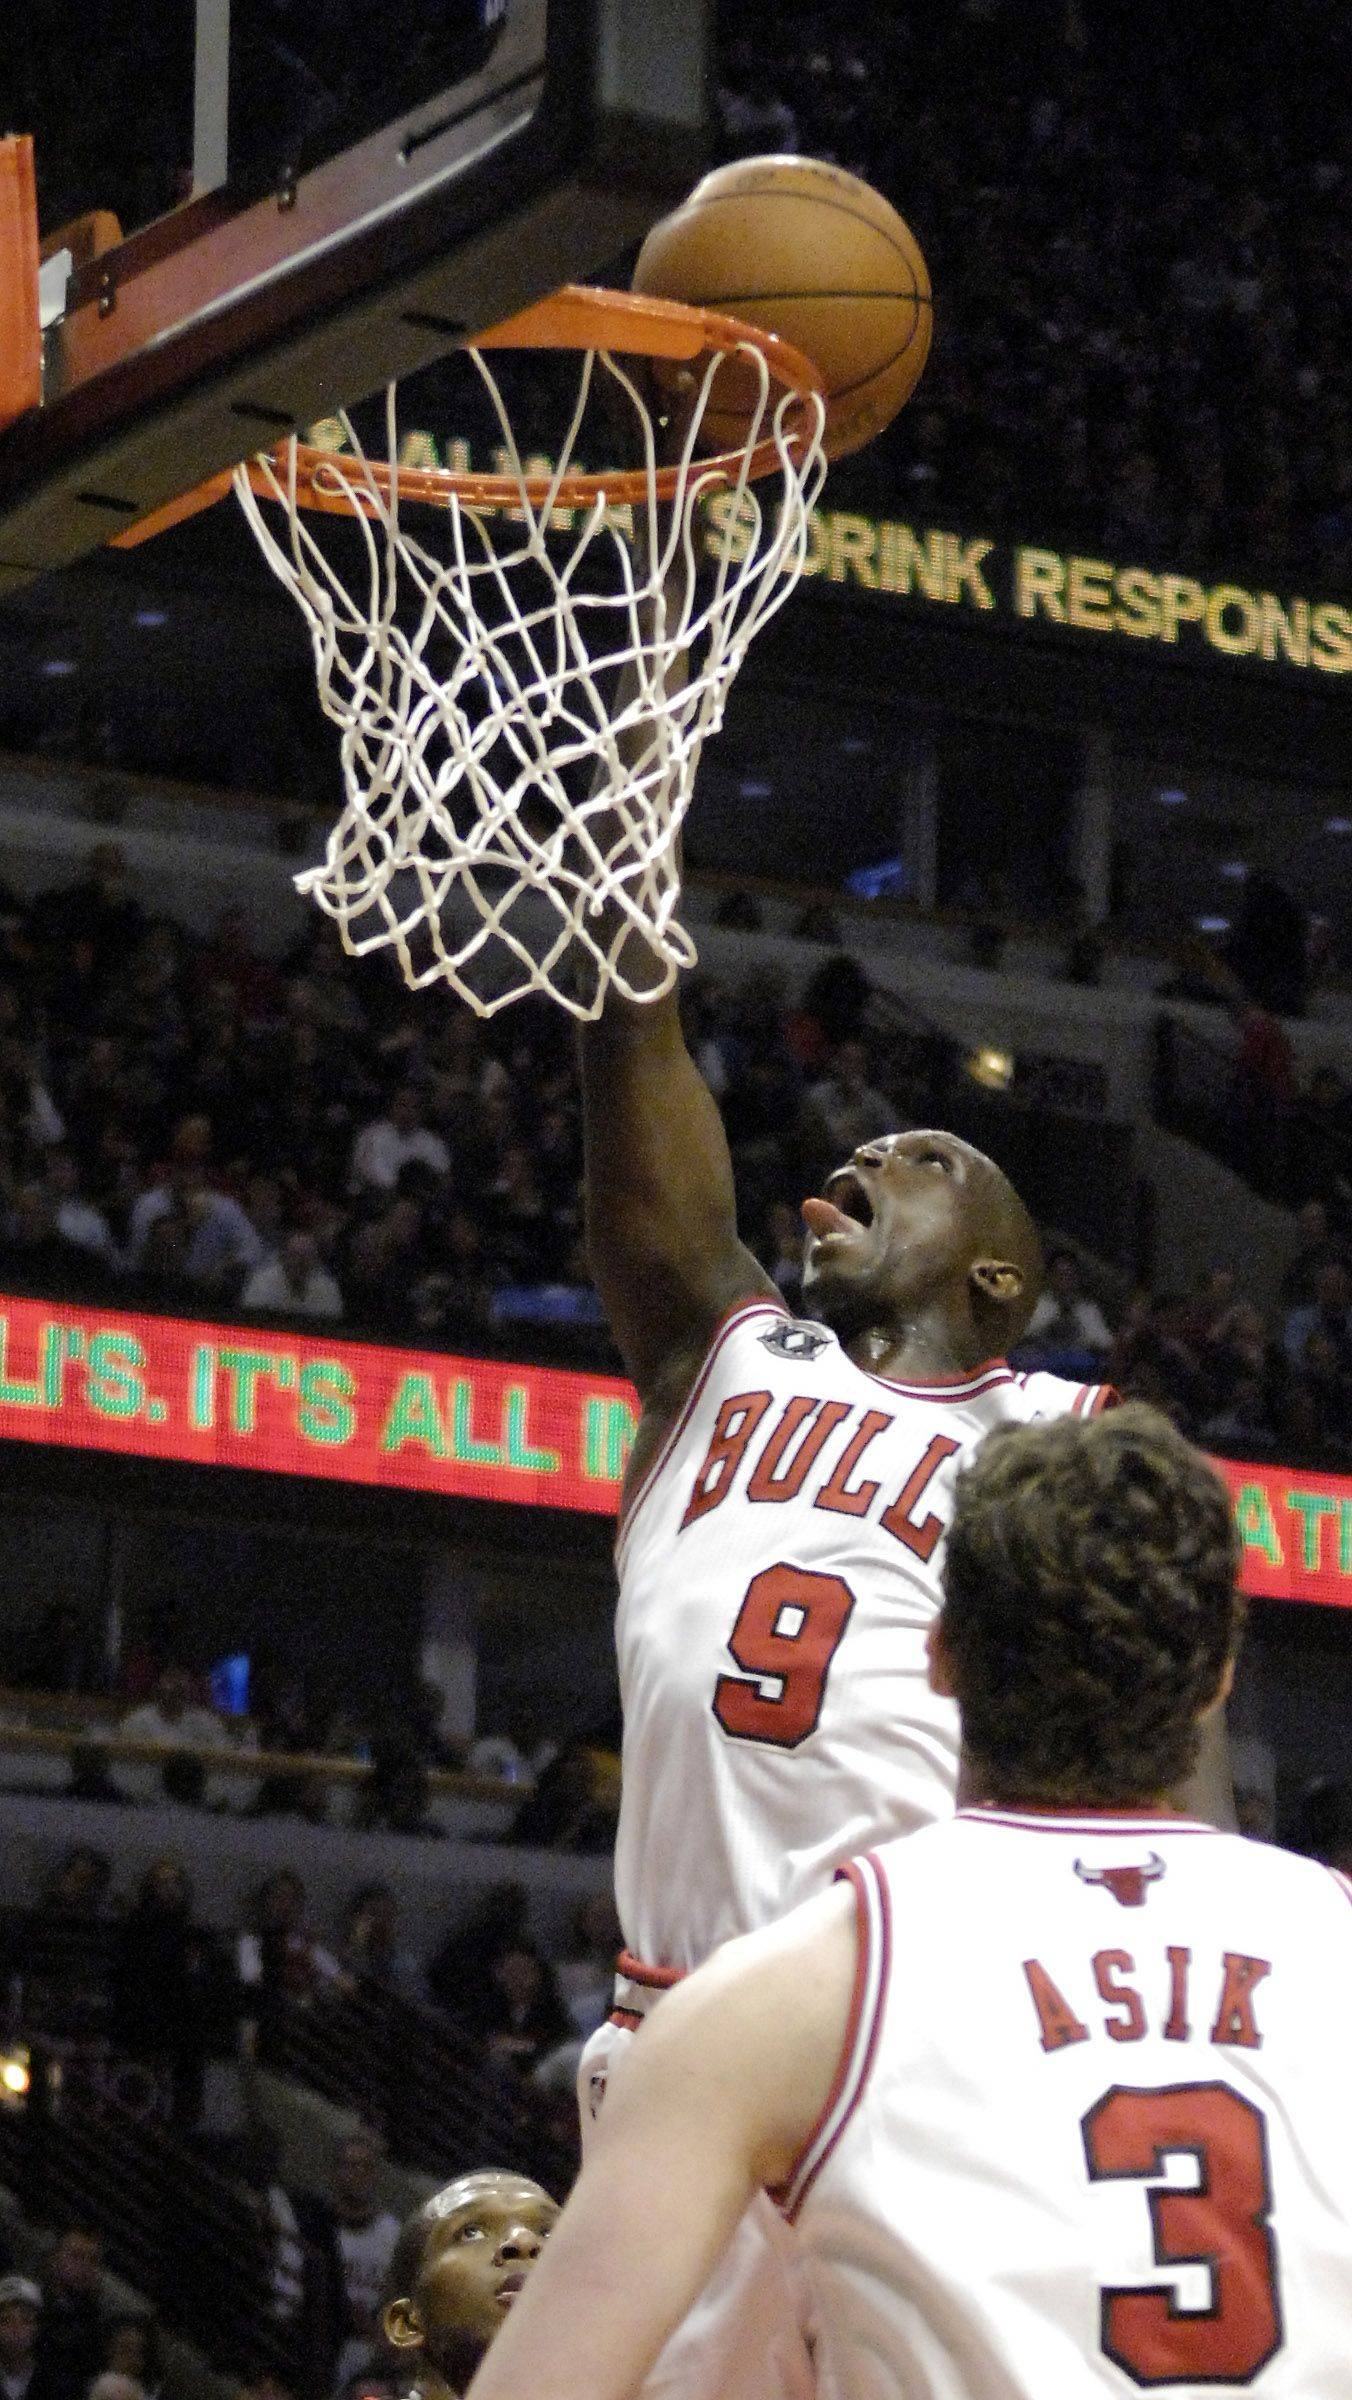 Chicago Bulls small forward Luol Deng lays the ball in during Saturday's game at the United Center in Chicago.